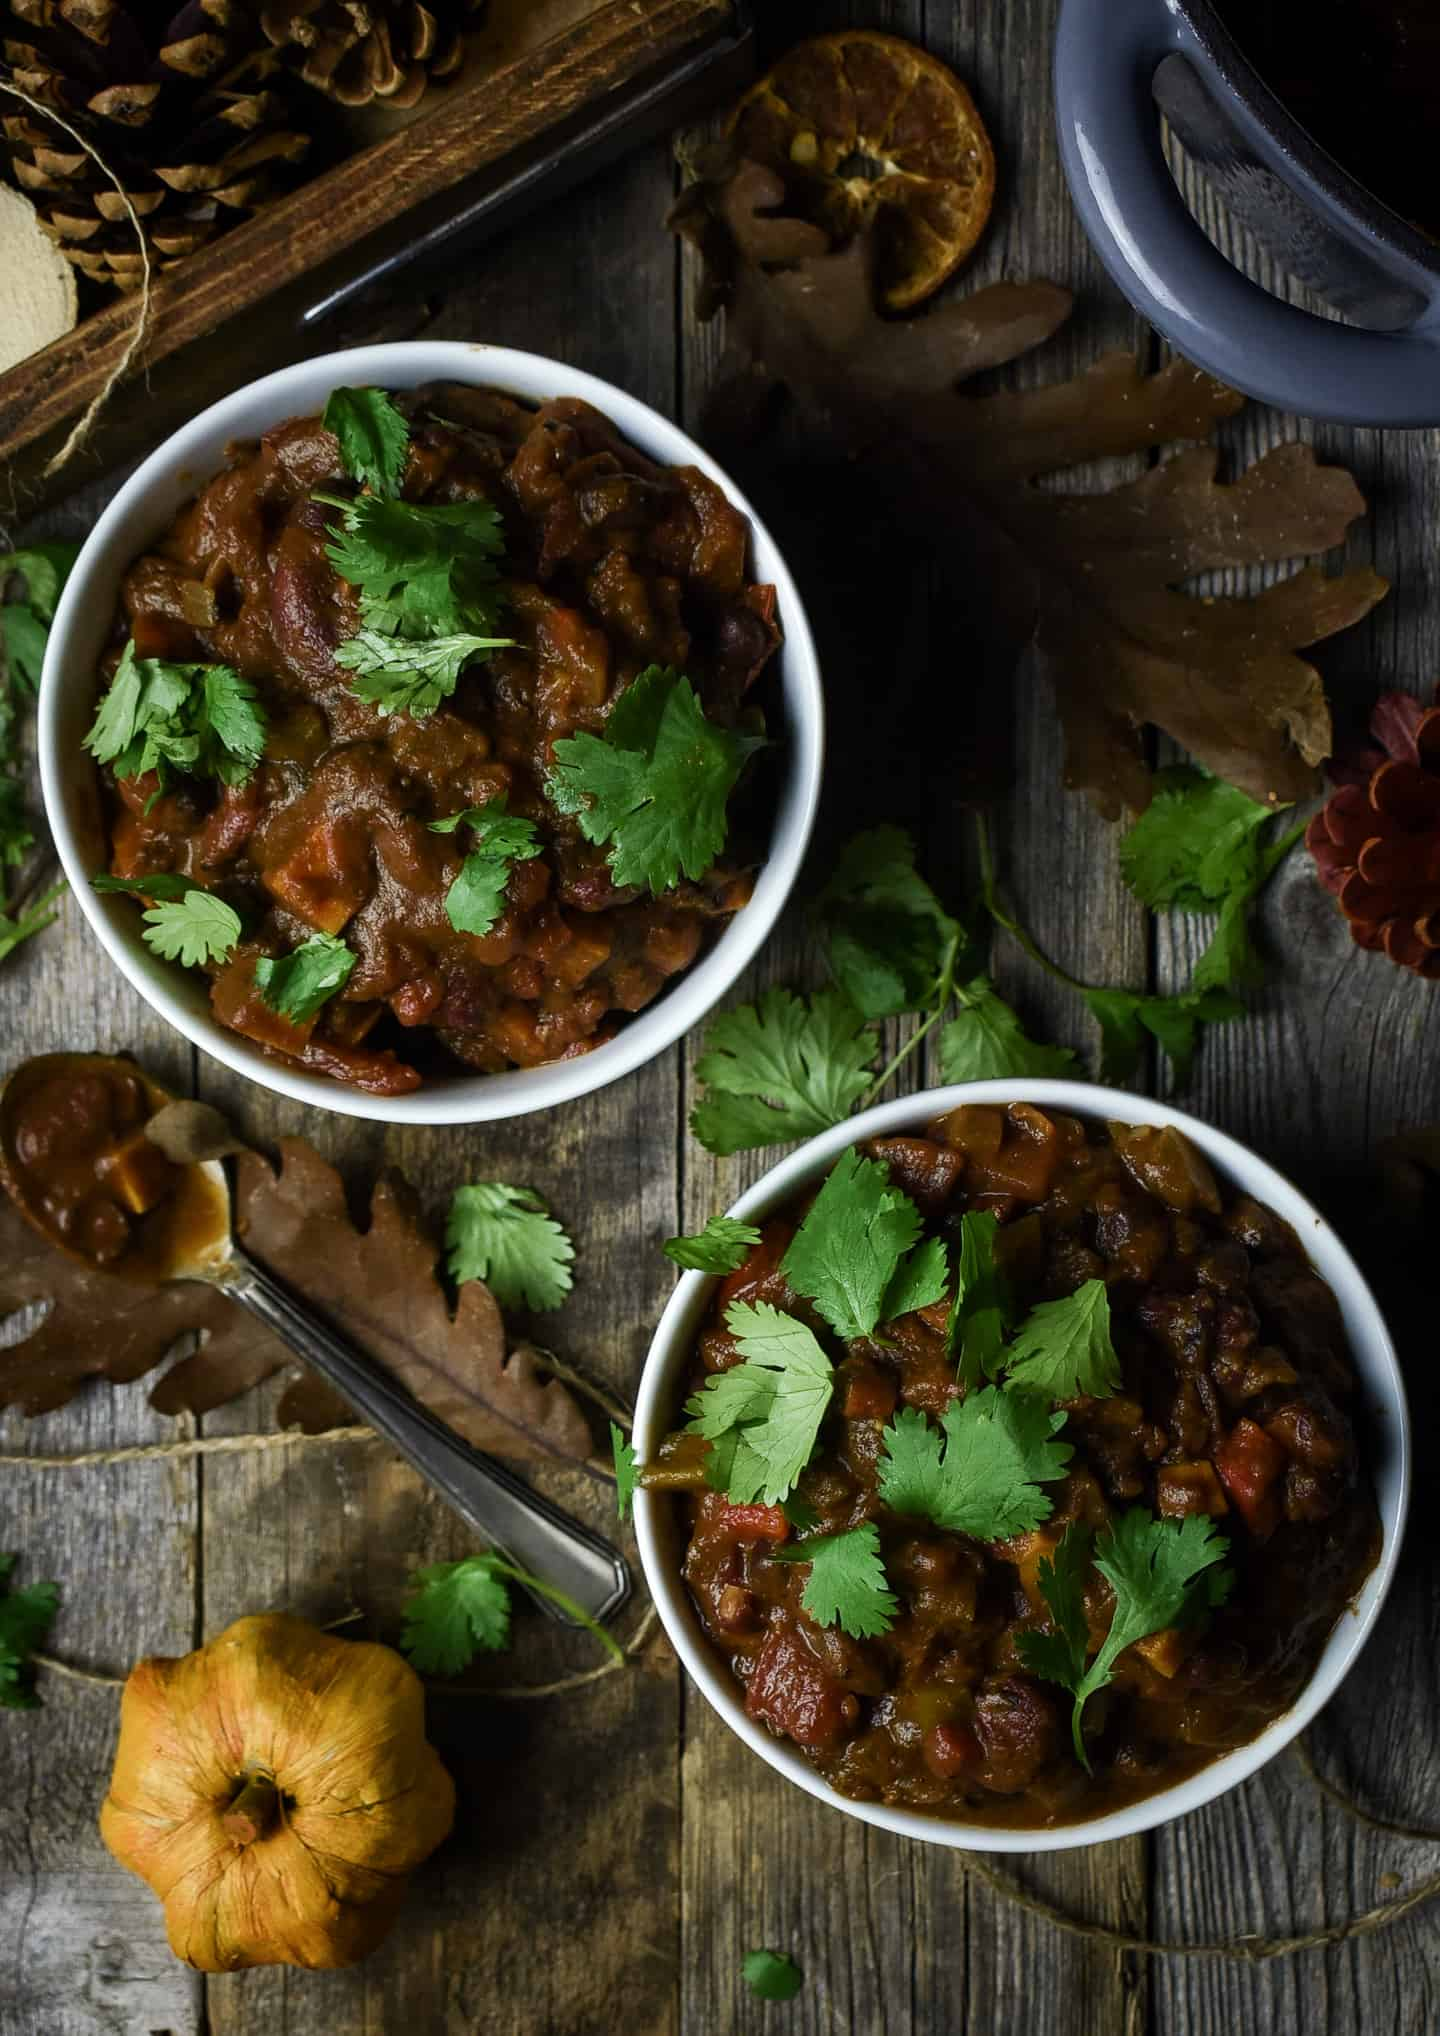 Two bowls of pumpkin chili topped with cilantro.